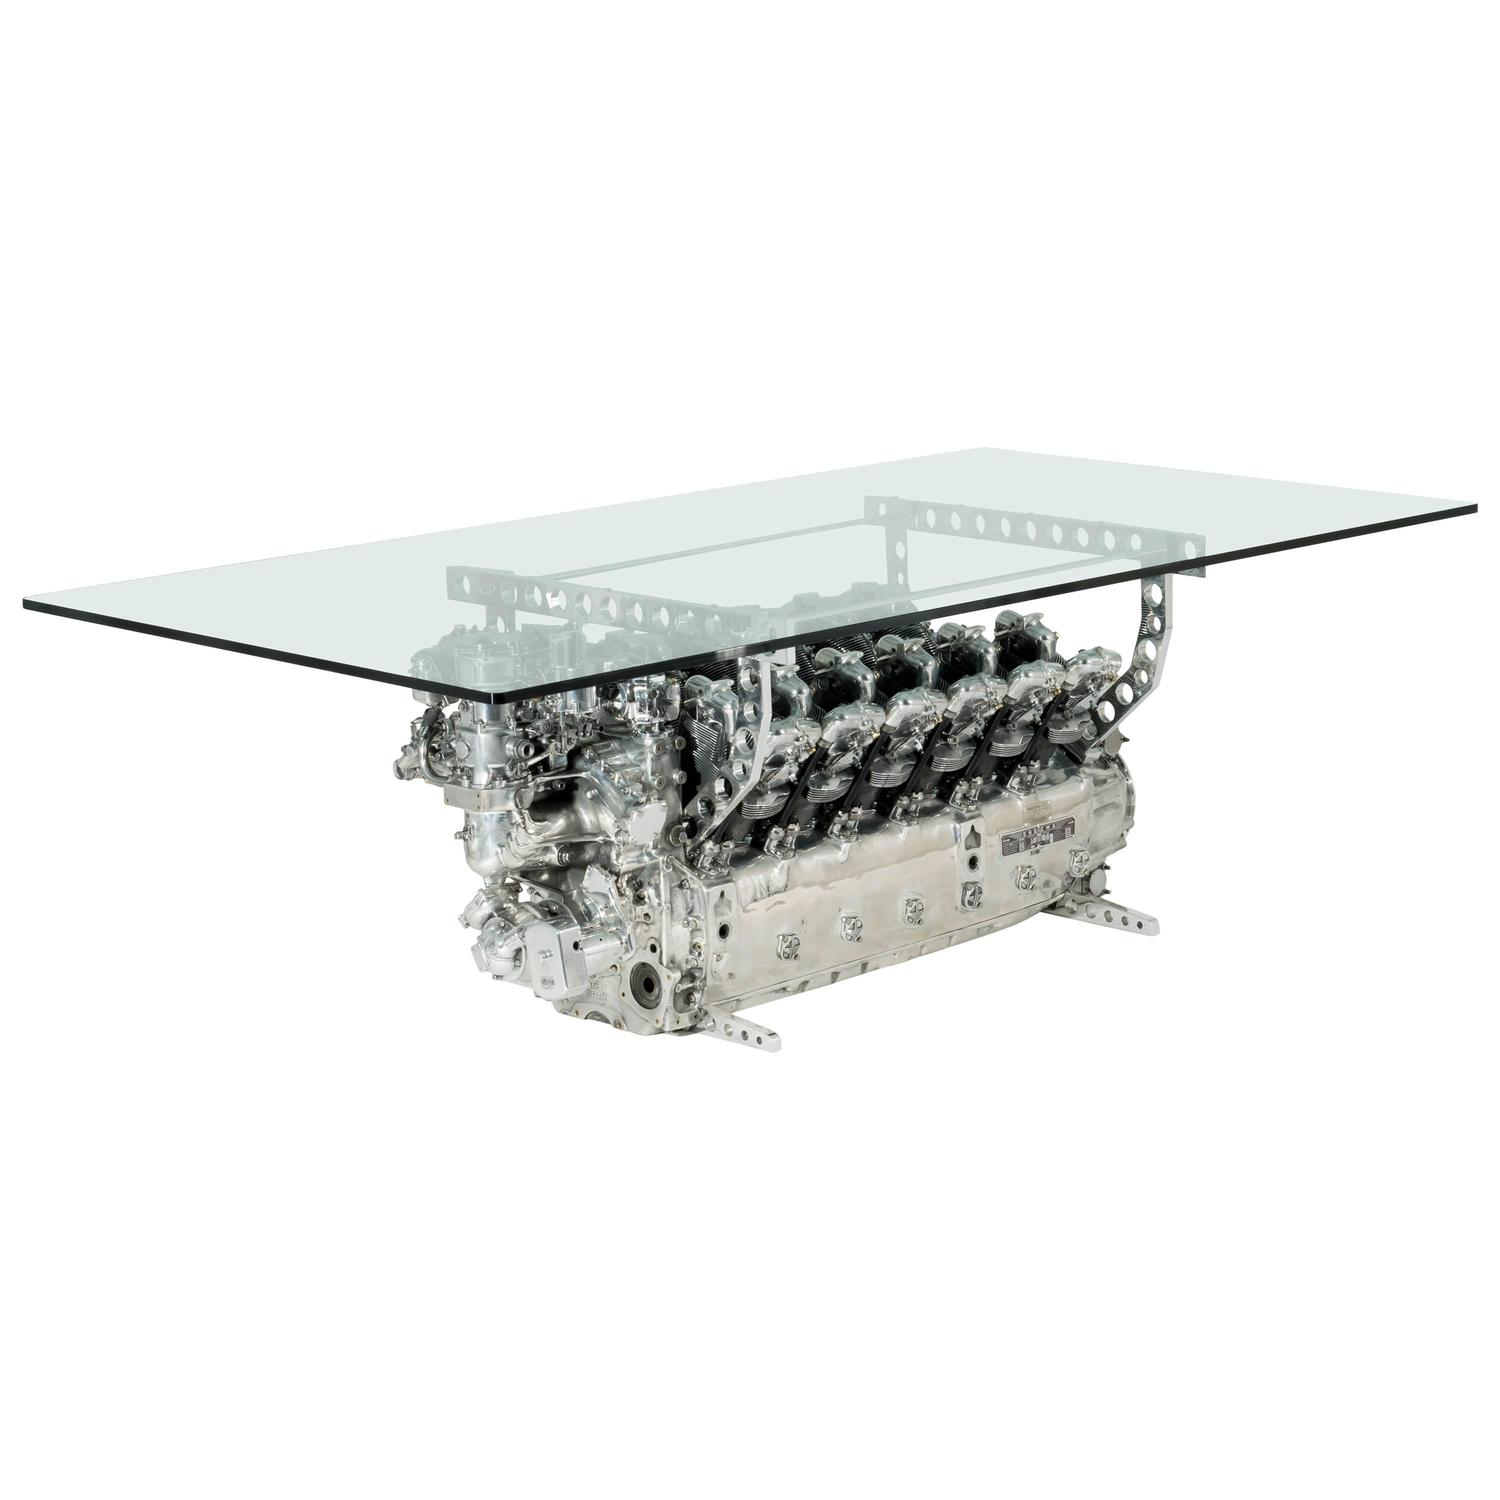 Aviation Furniture Dining Table from Flamant Engine by Jean Pierre